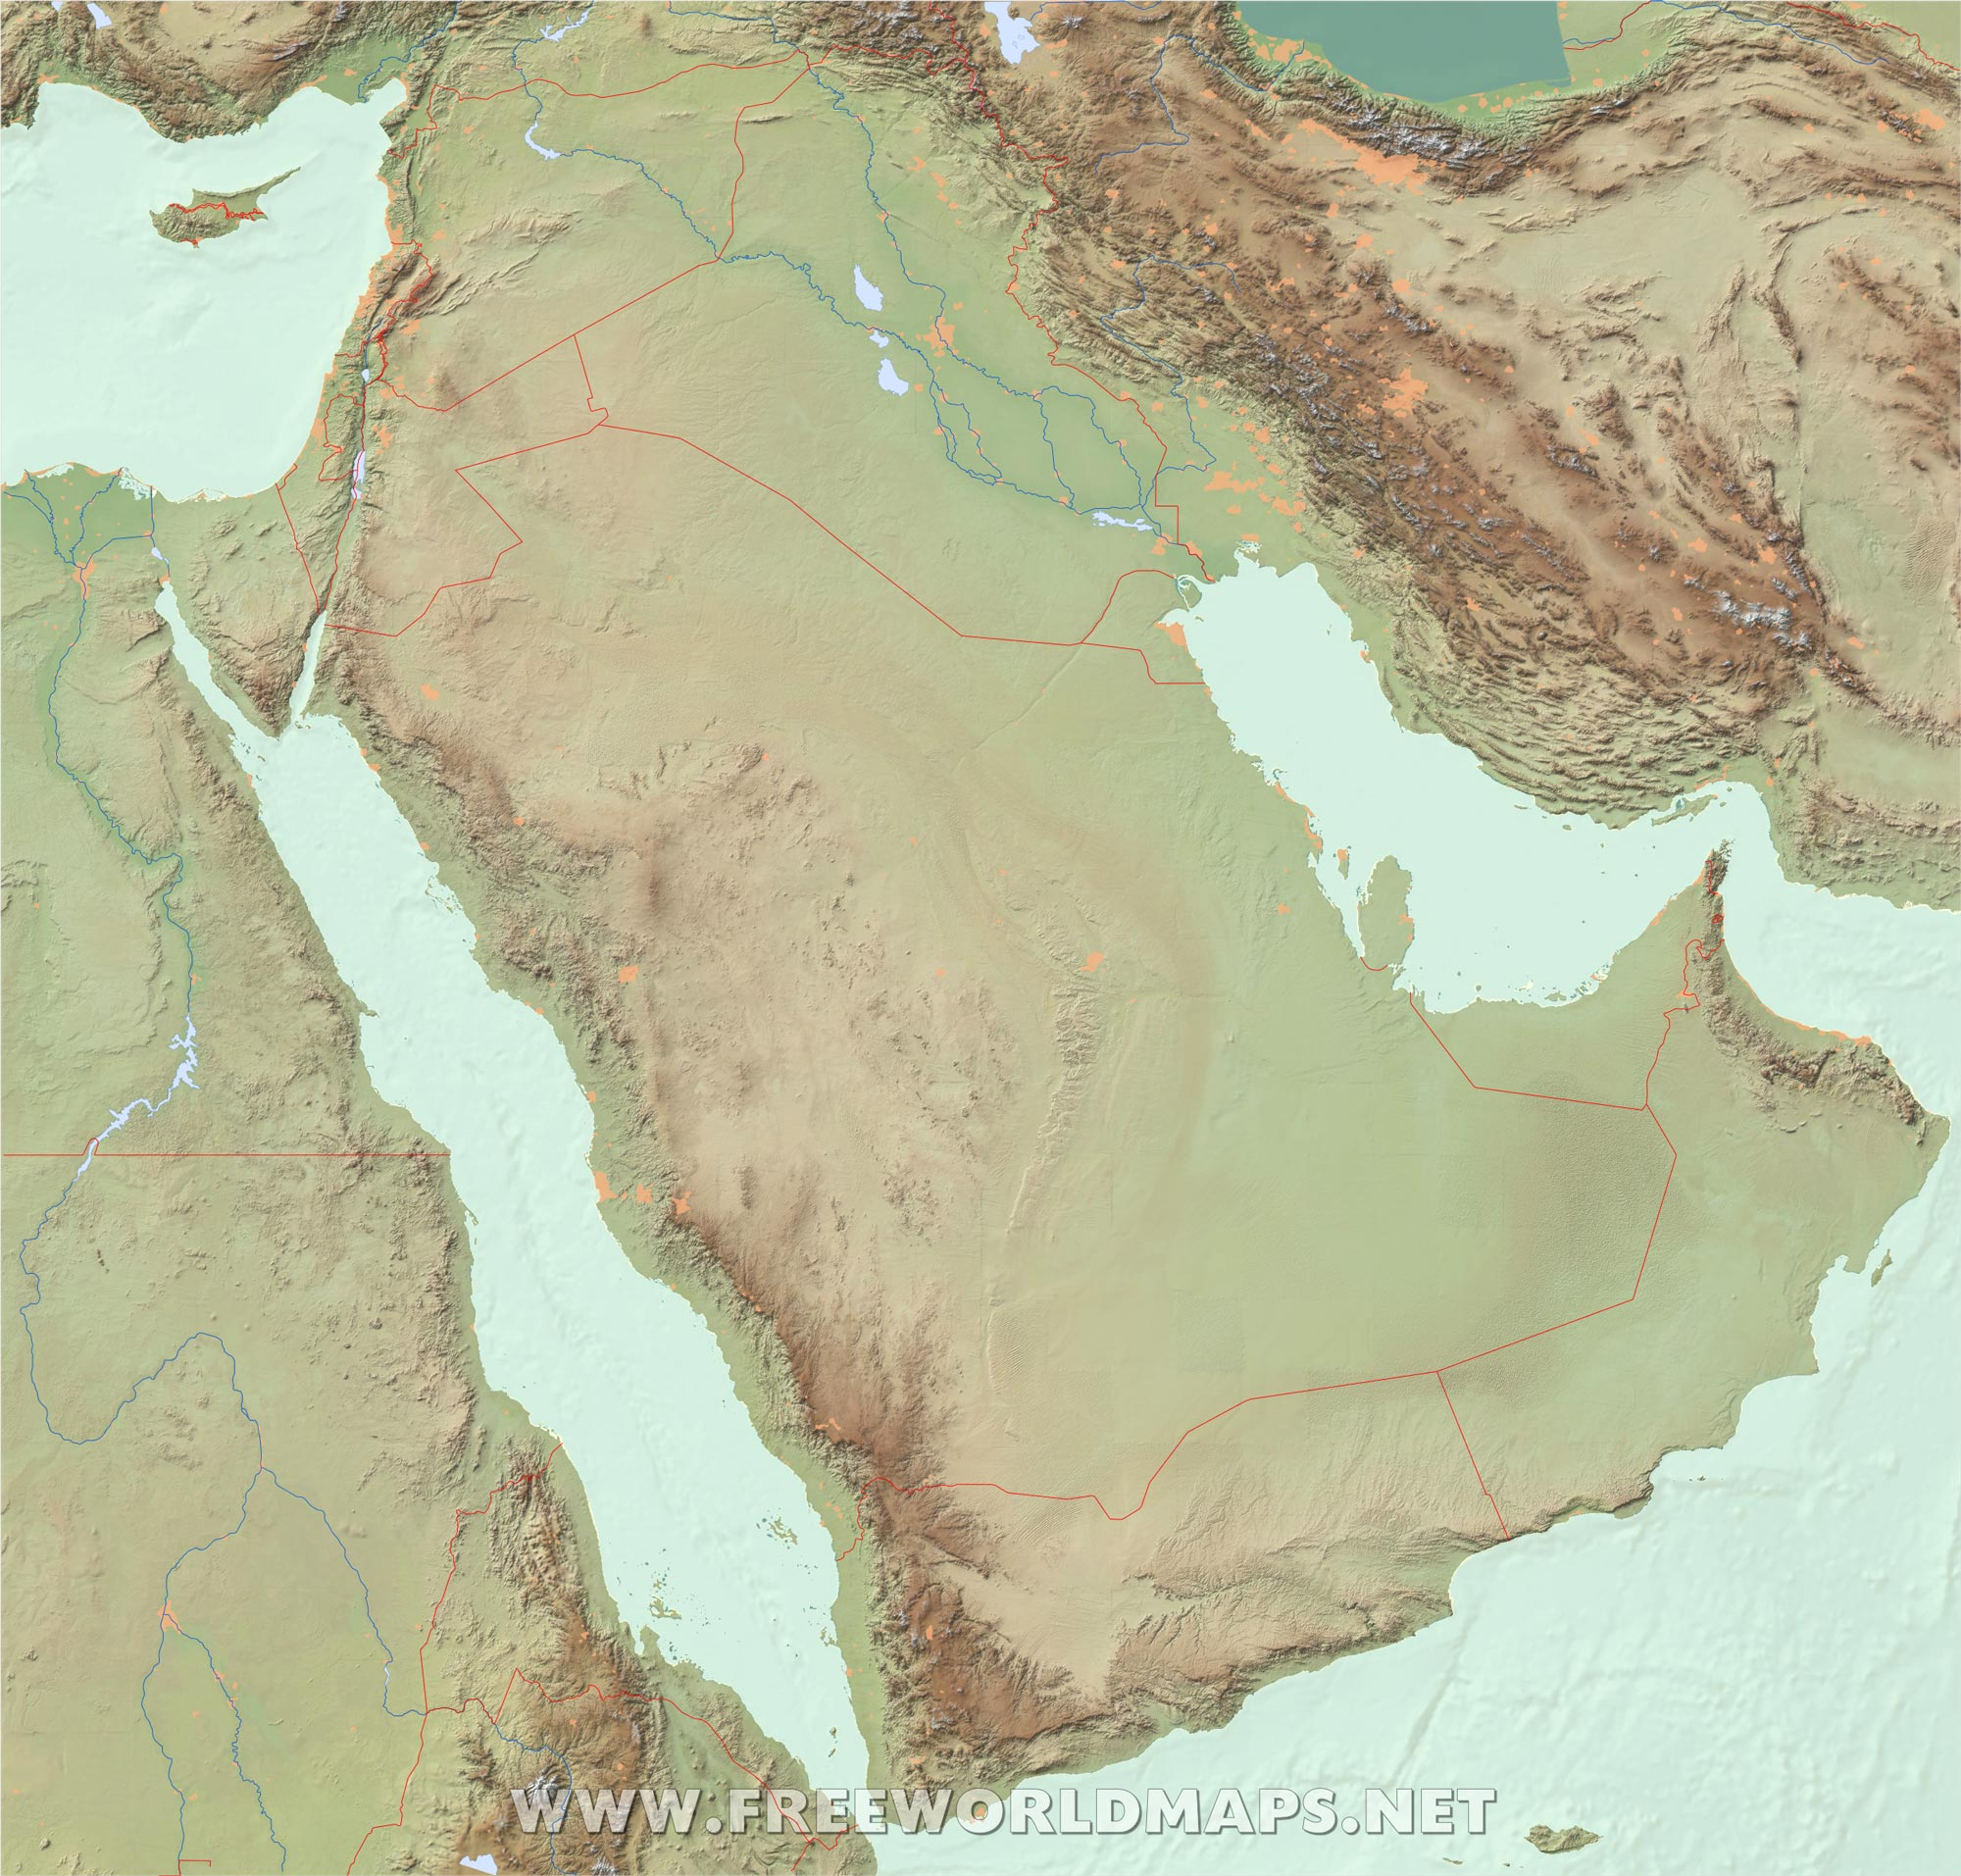 Free Middle East Maps – by Freeworldmaps net